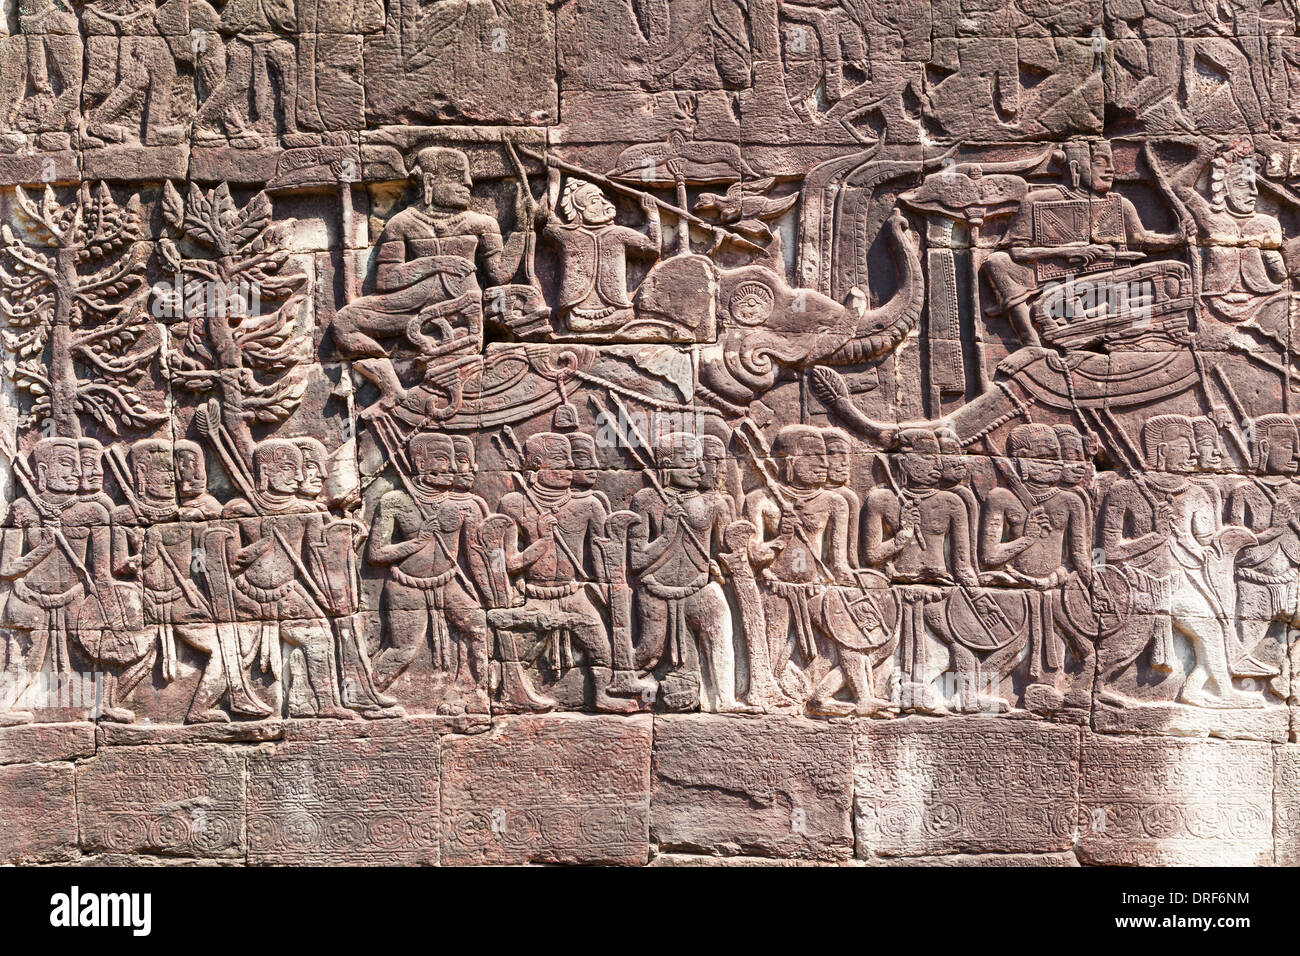 Bas reliefs on the west side of the Bayon temple, Cambodia - Stock Image